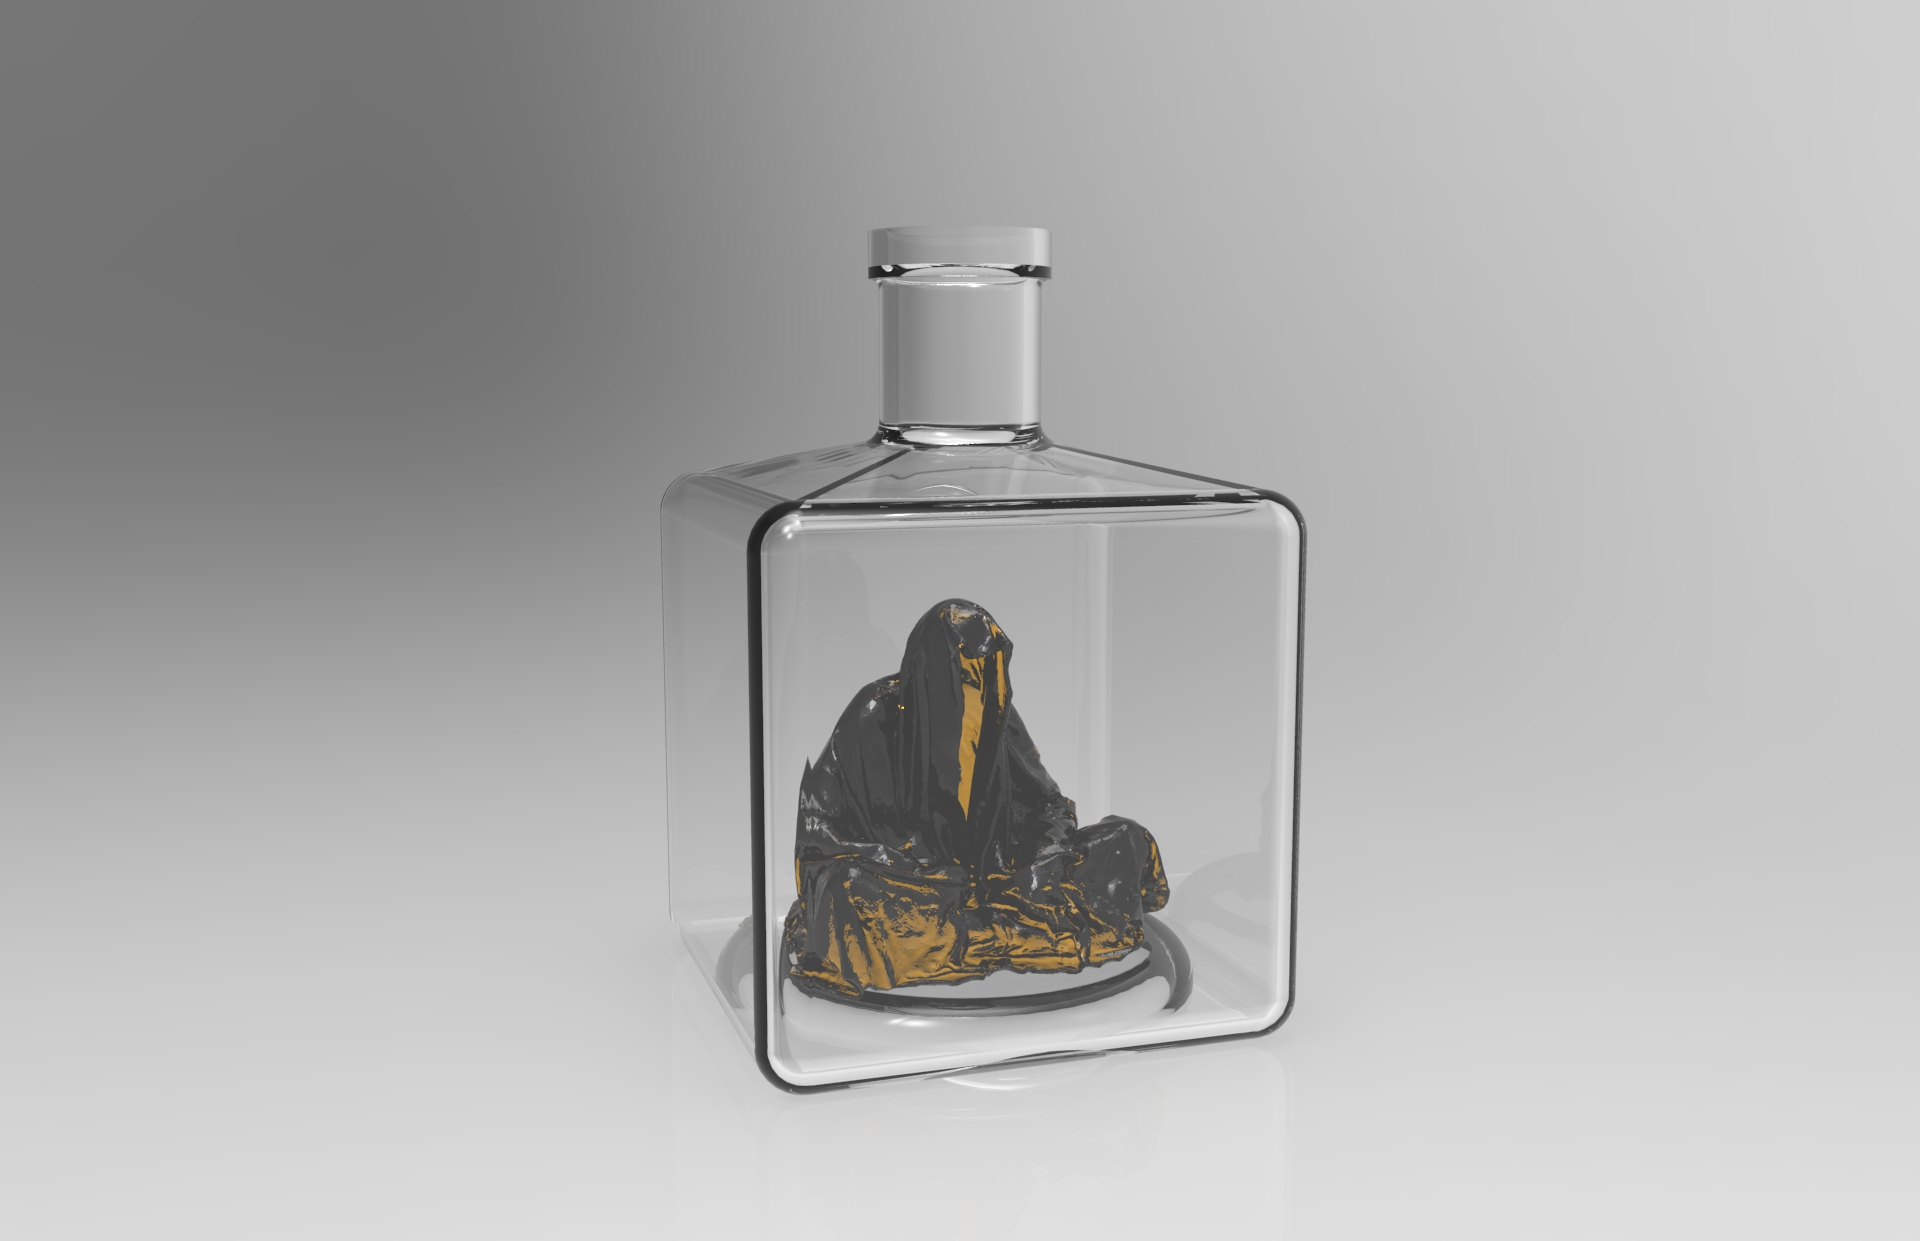 Guardian glass bottle wadka water drink manfred kili kielnhofer art arts design glass 445